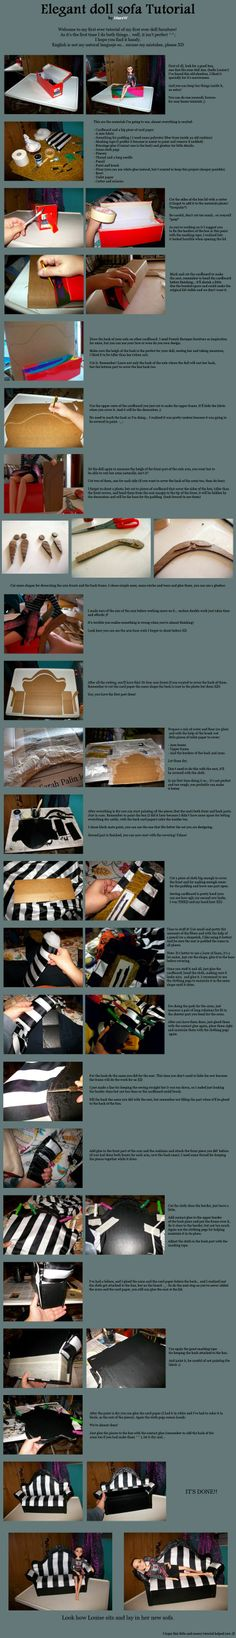 Elegant doll sofa tutorial by MarsW. Found this in a site I like. I don't do cardboard. However those of you that do may find it interesting and something cool to do. The blonde in pic.